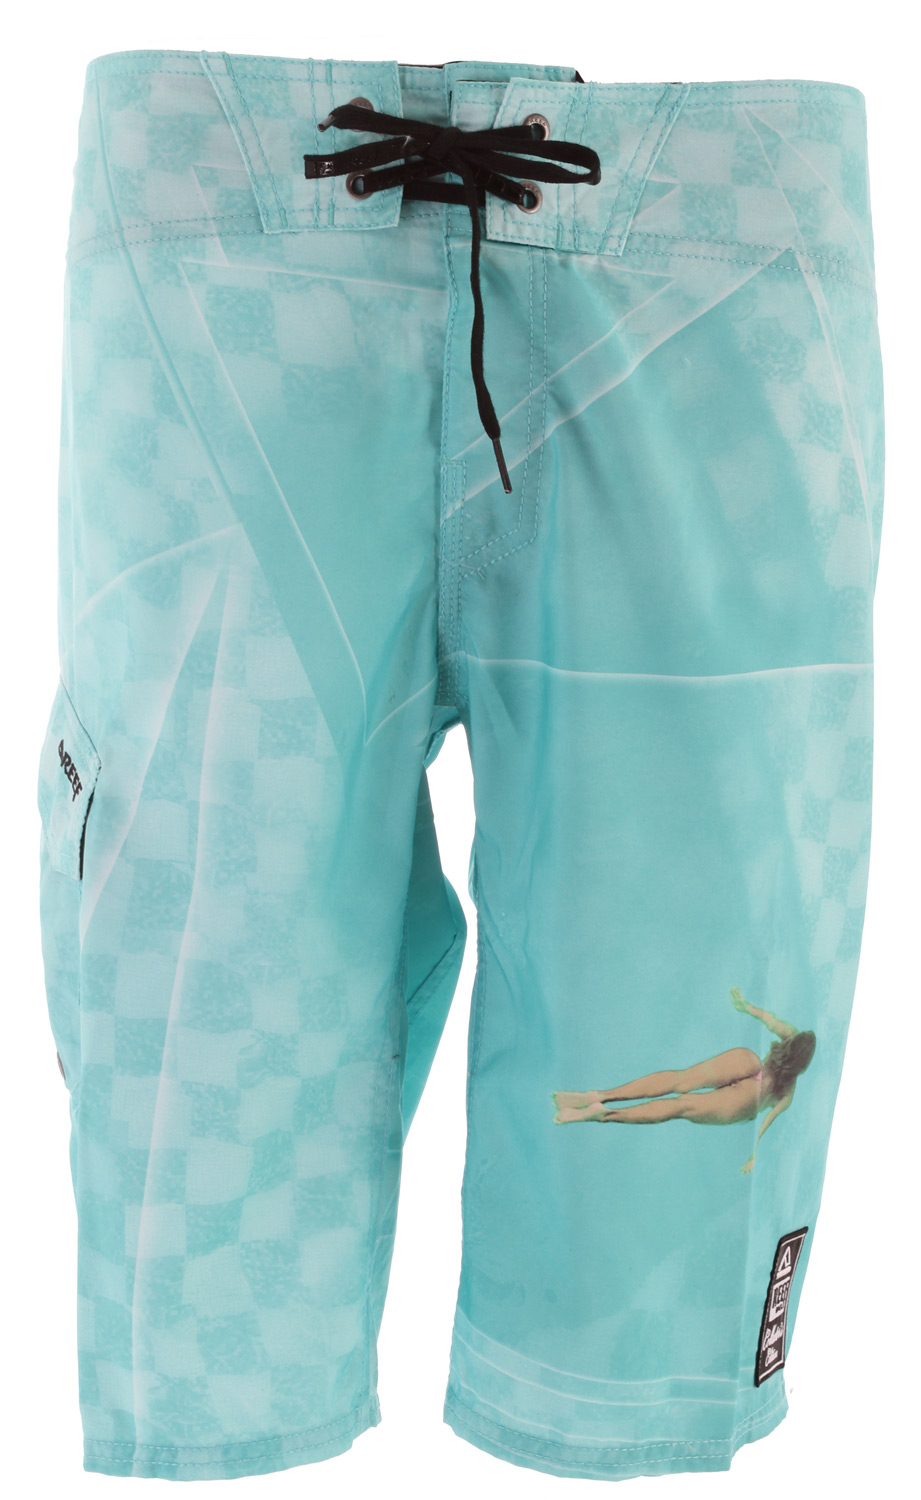 "Surf Key Features of the Reef Miss Checked Dreams Boardshorts: Pro-am microfiber 100% polyester Collectors edition woven patch on left leg 22"" outseam - $56.00"